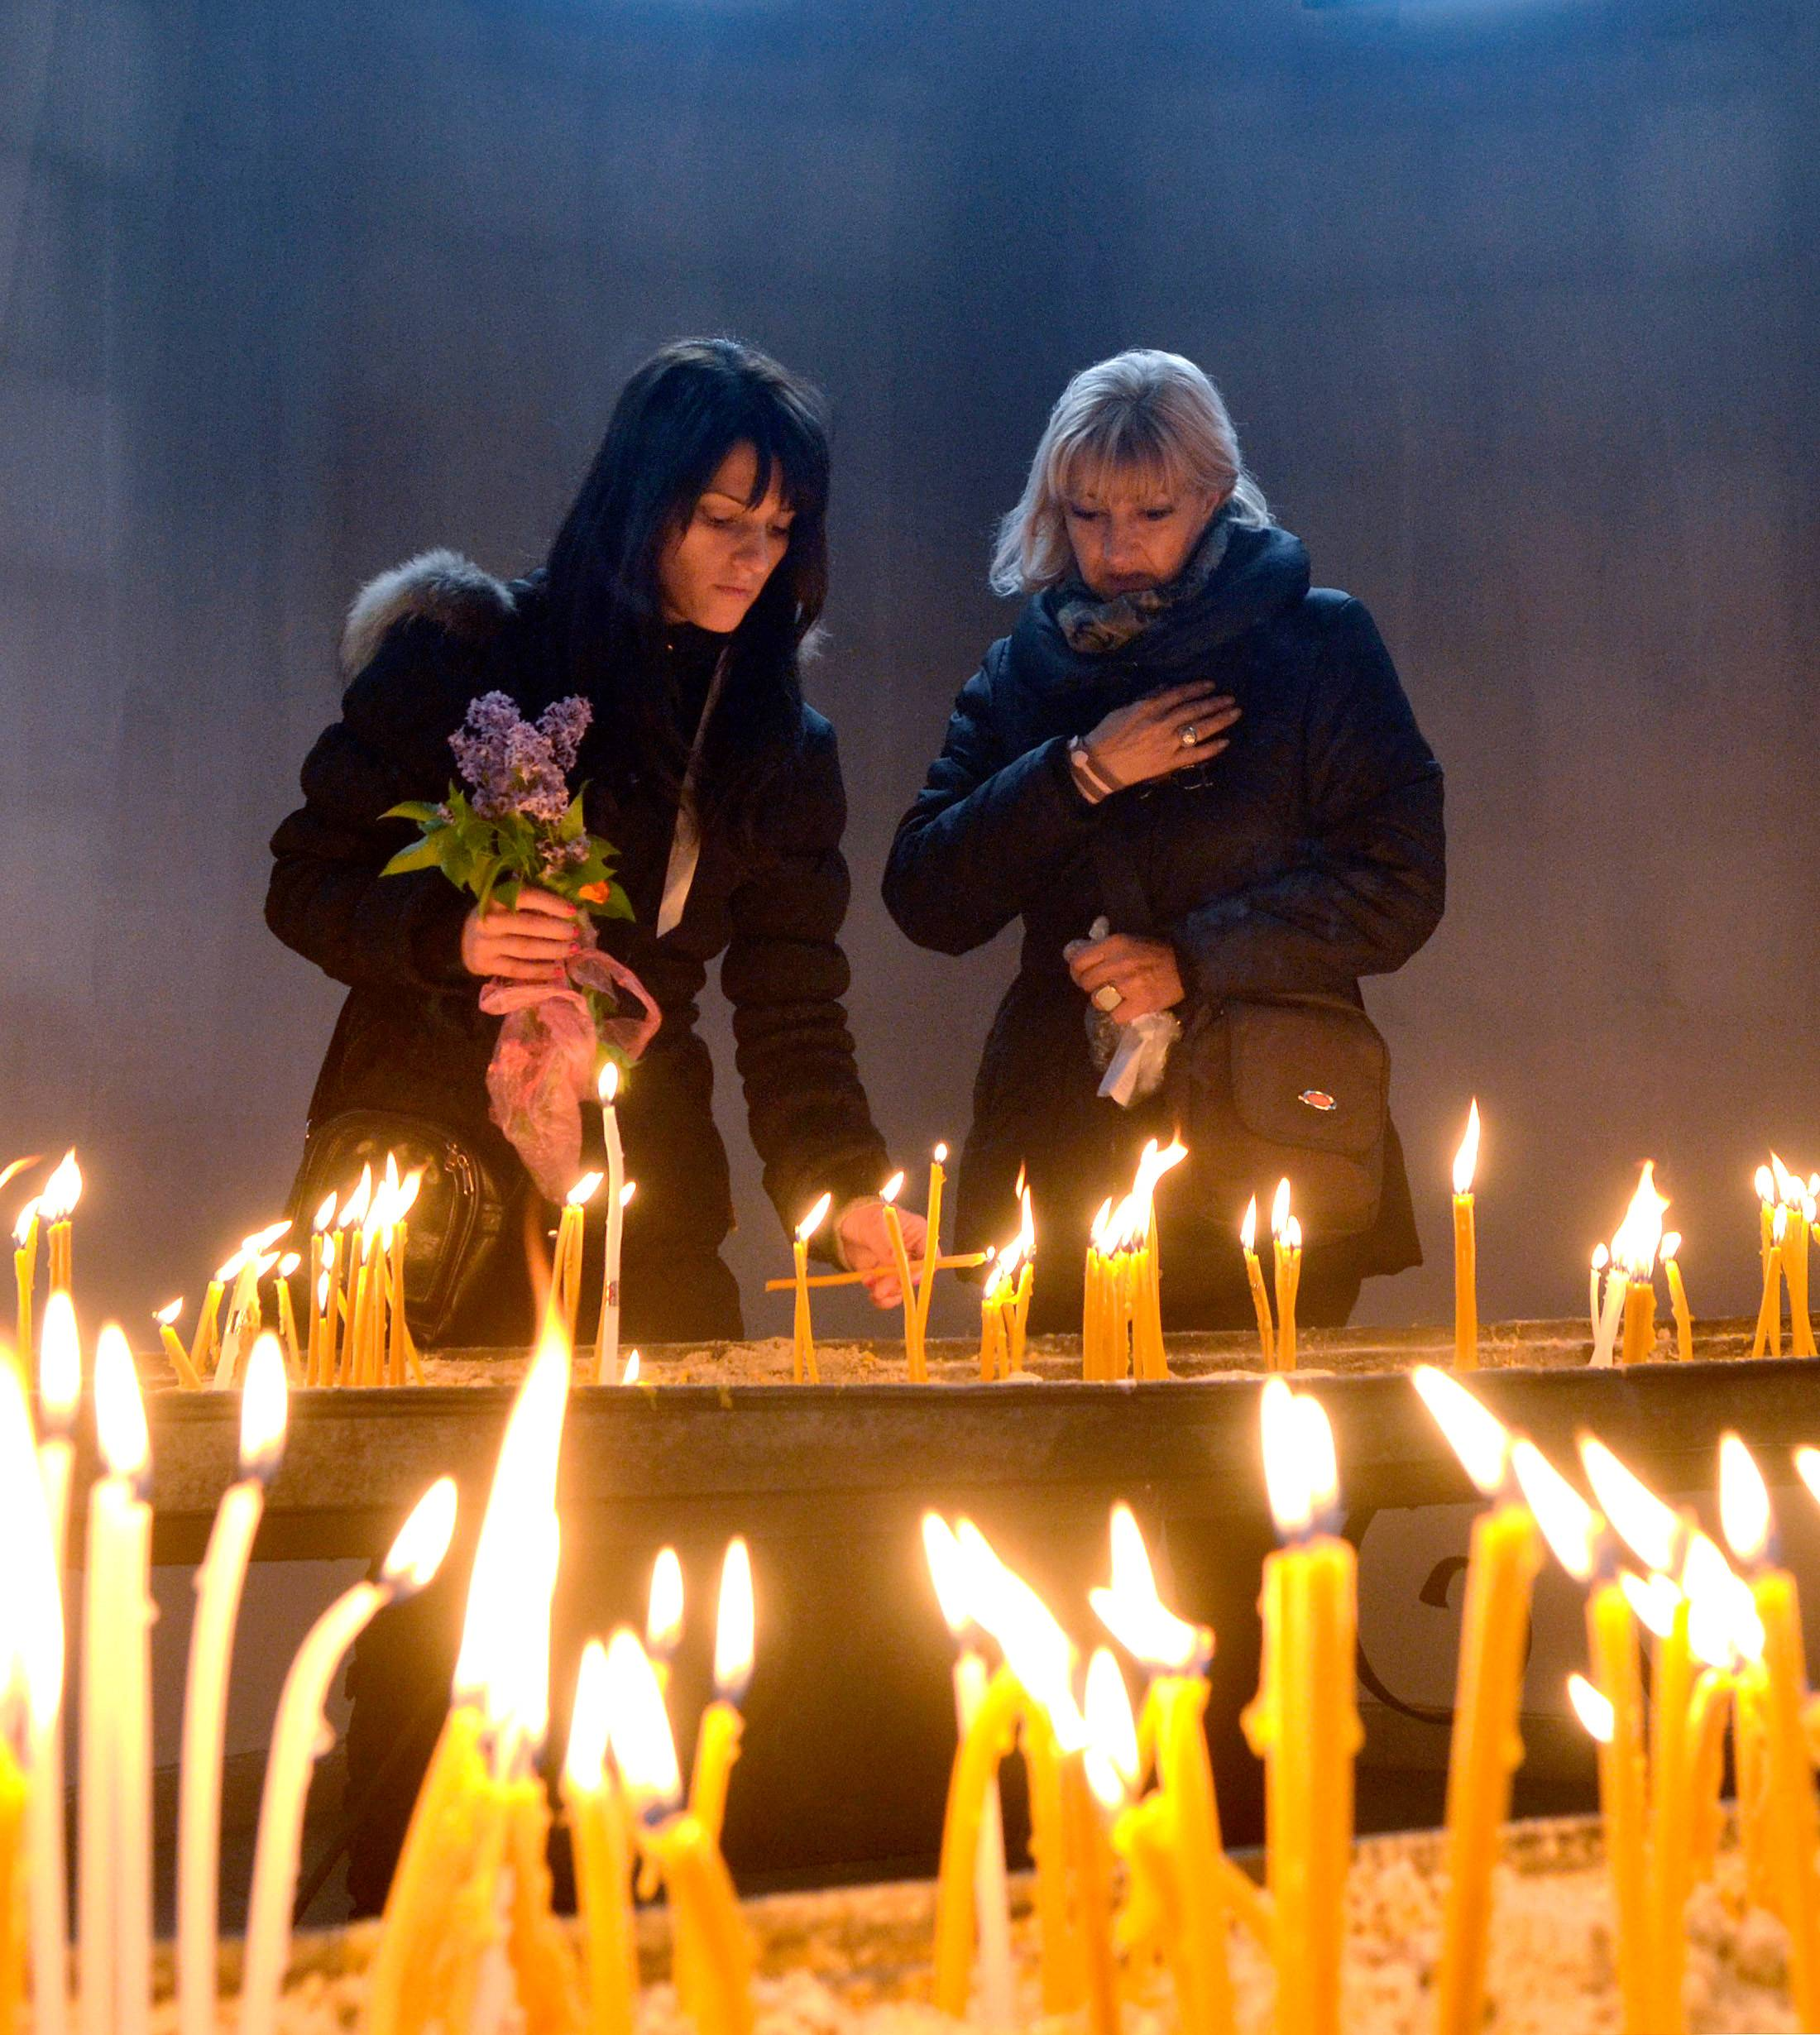 Women light candles on Good Friday, at St Clement Christian Orthodox church in Skopje, Macedonia.